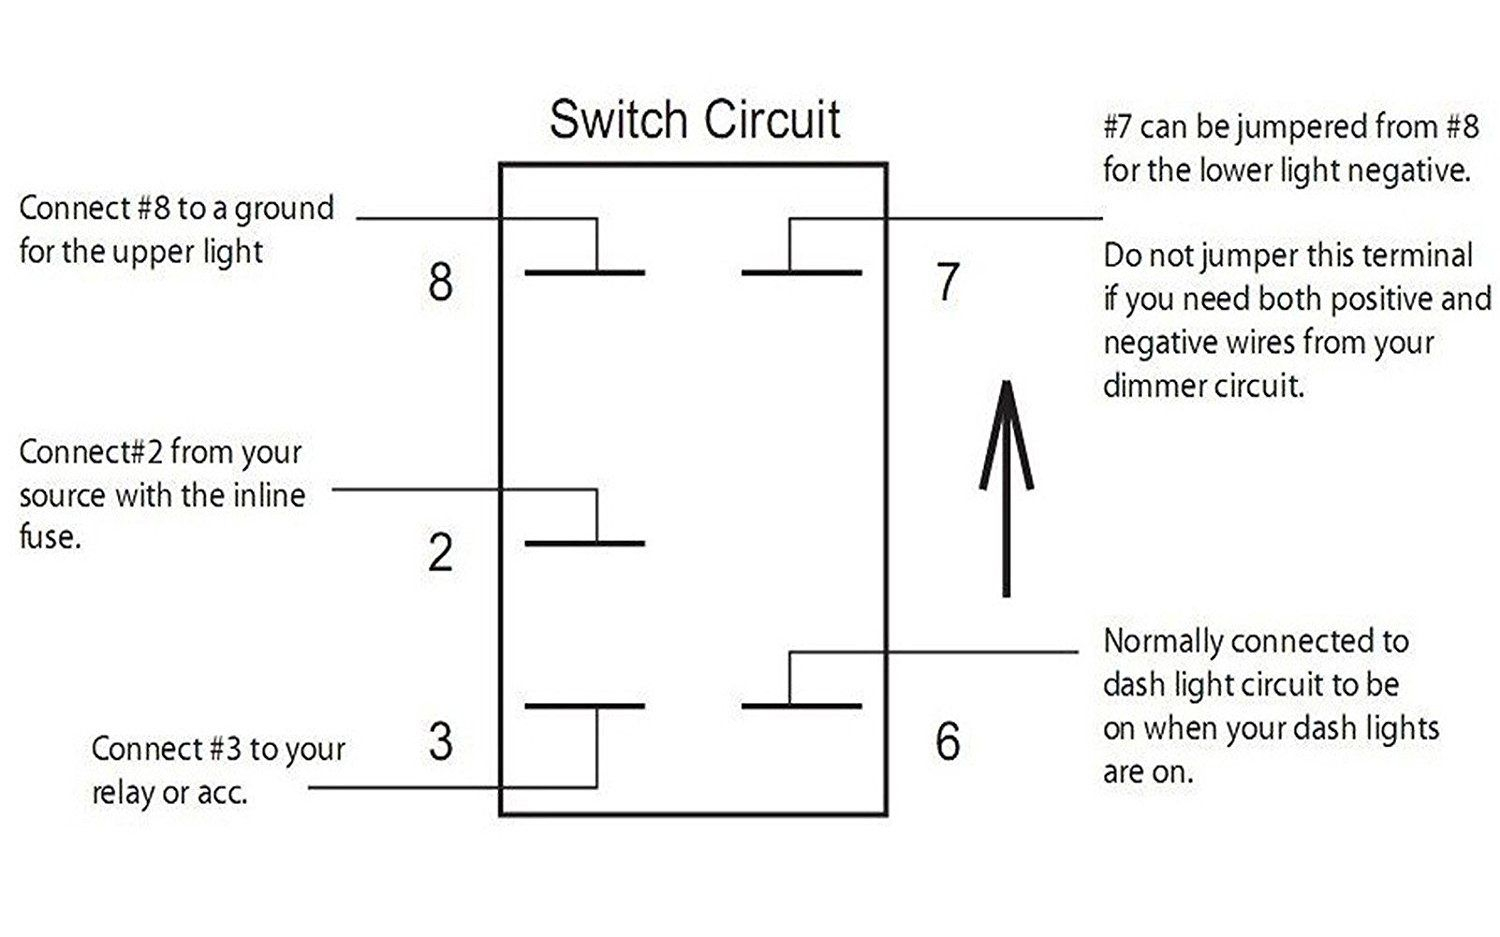 carling technologies rocker switch wiring diagram Collection-Carling Technologies Rocker Switch Wiring Diagram In L 340 240 36 12 4-h